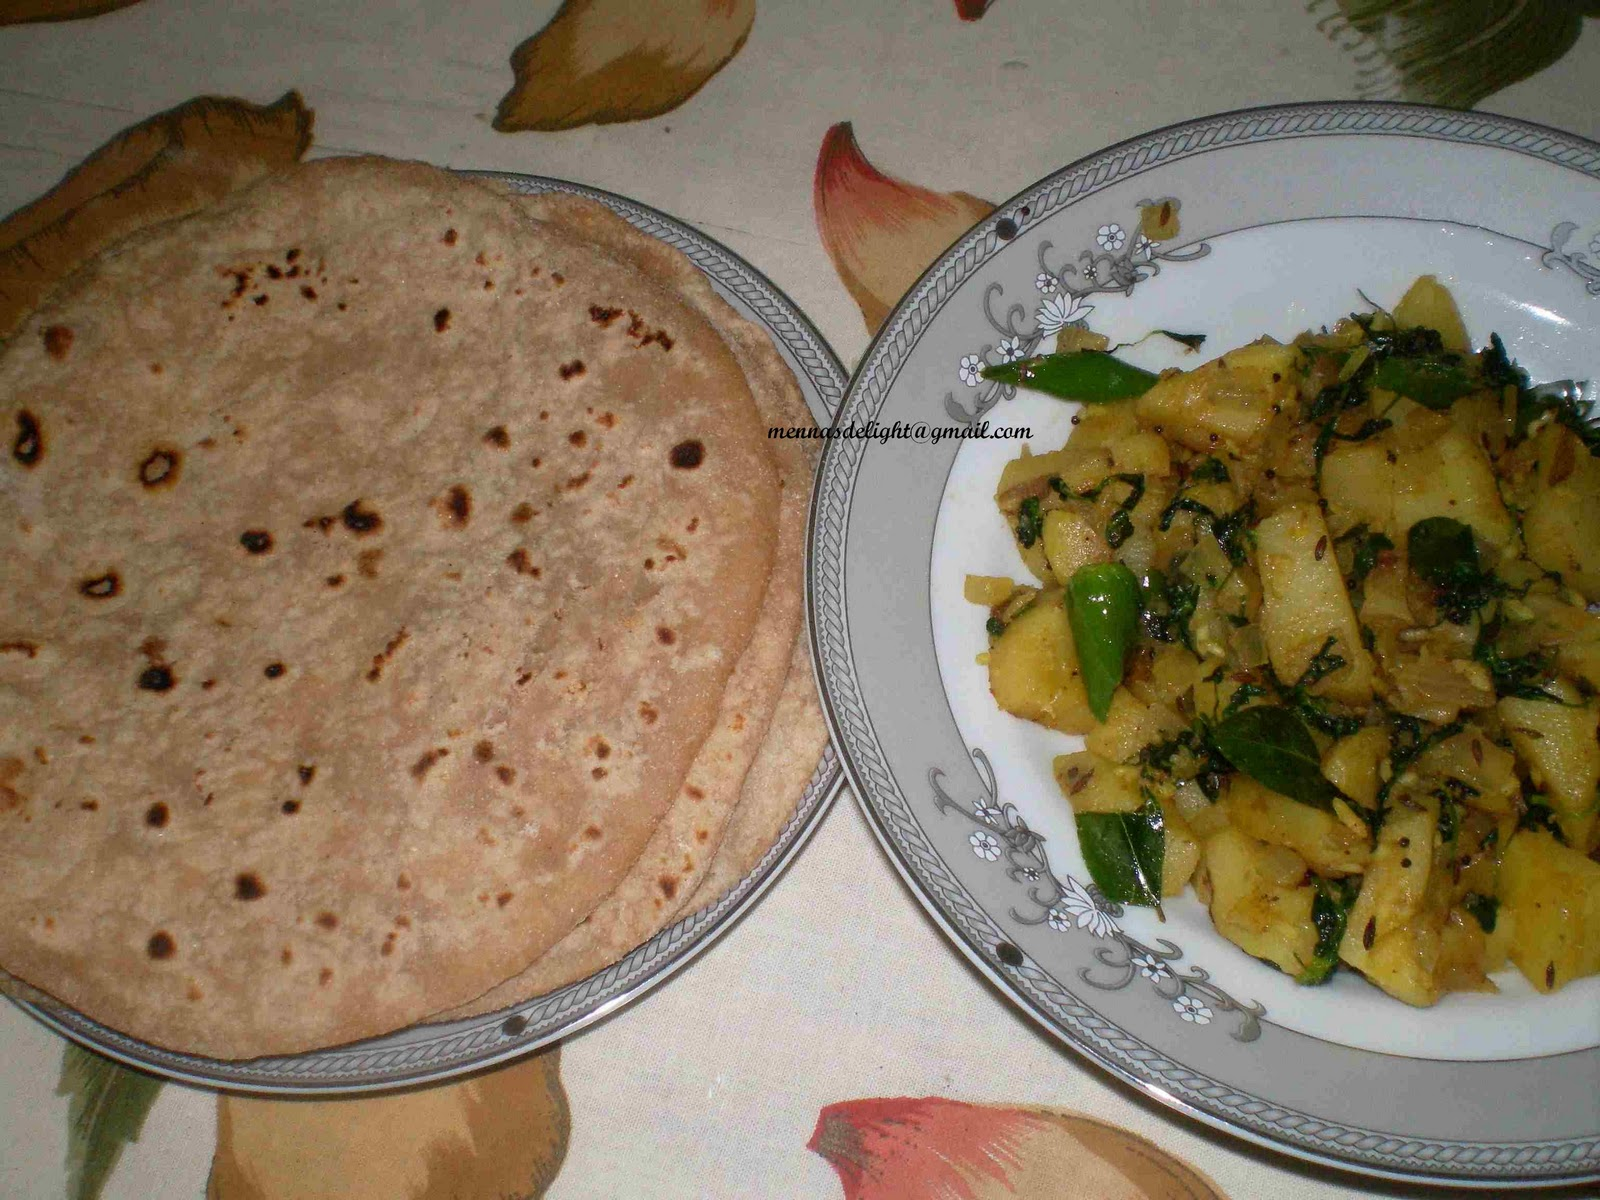 ... Bangalore - Life n Spice: Aloo Methi / Potatoes with Fenugreek leaves